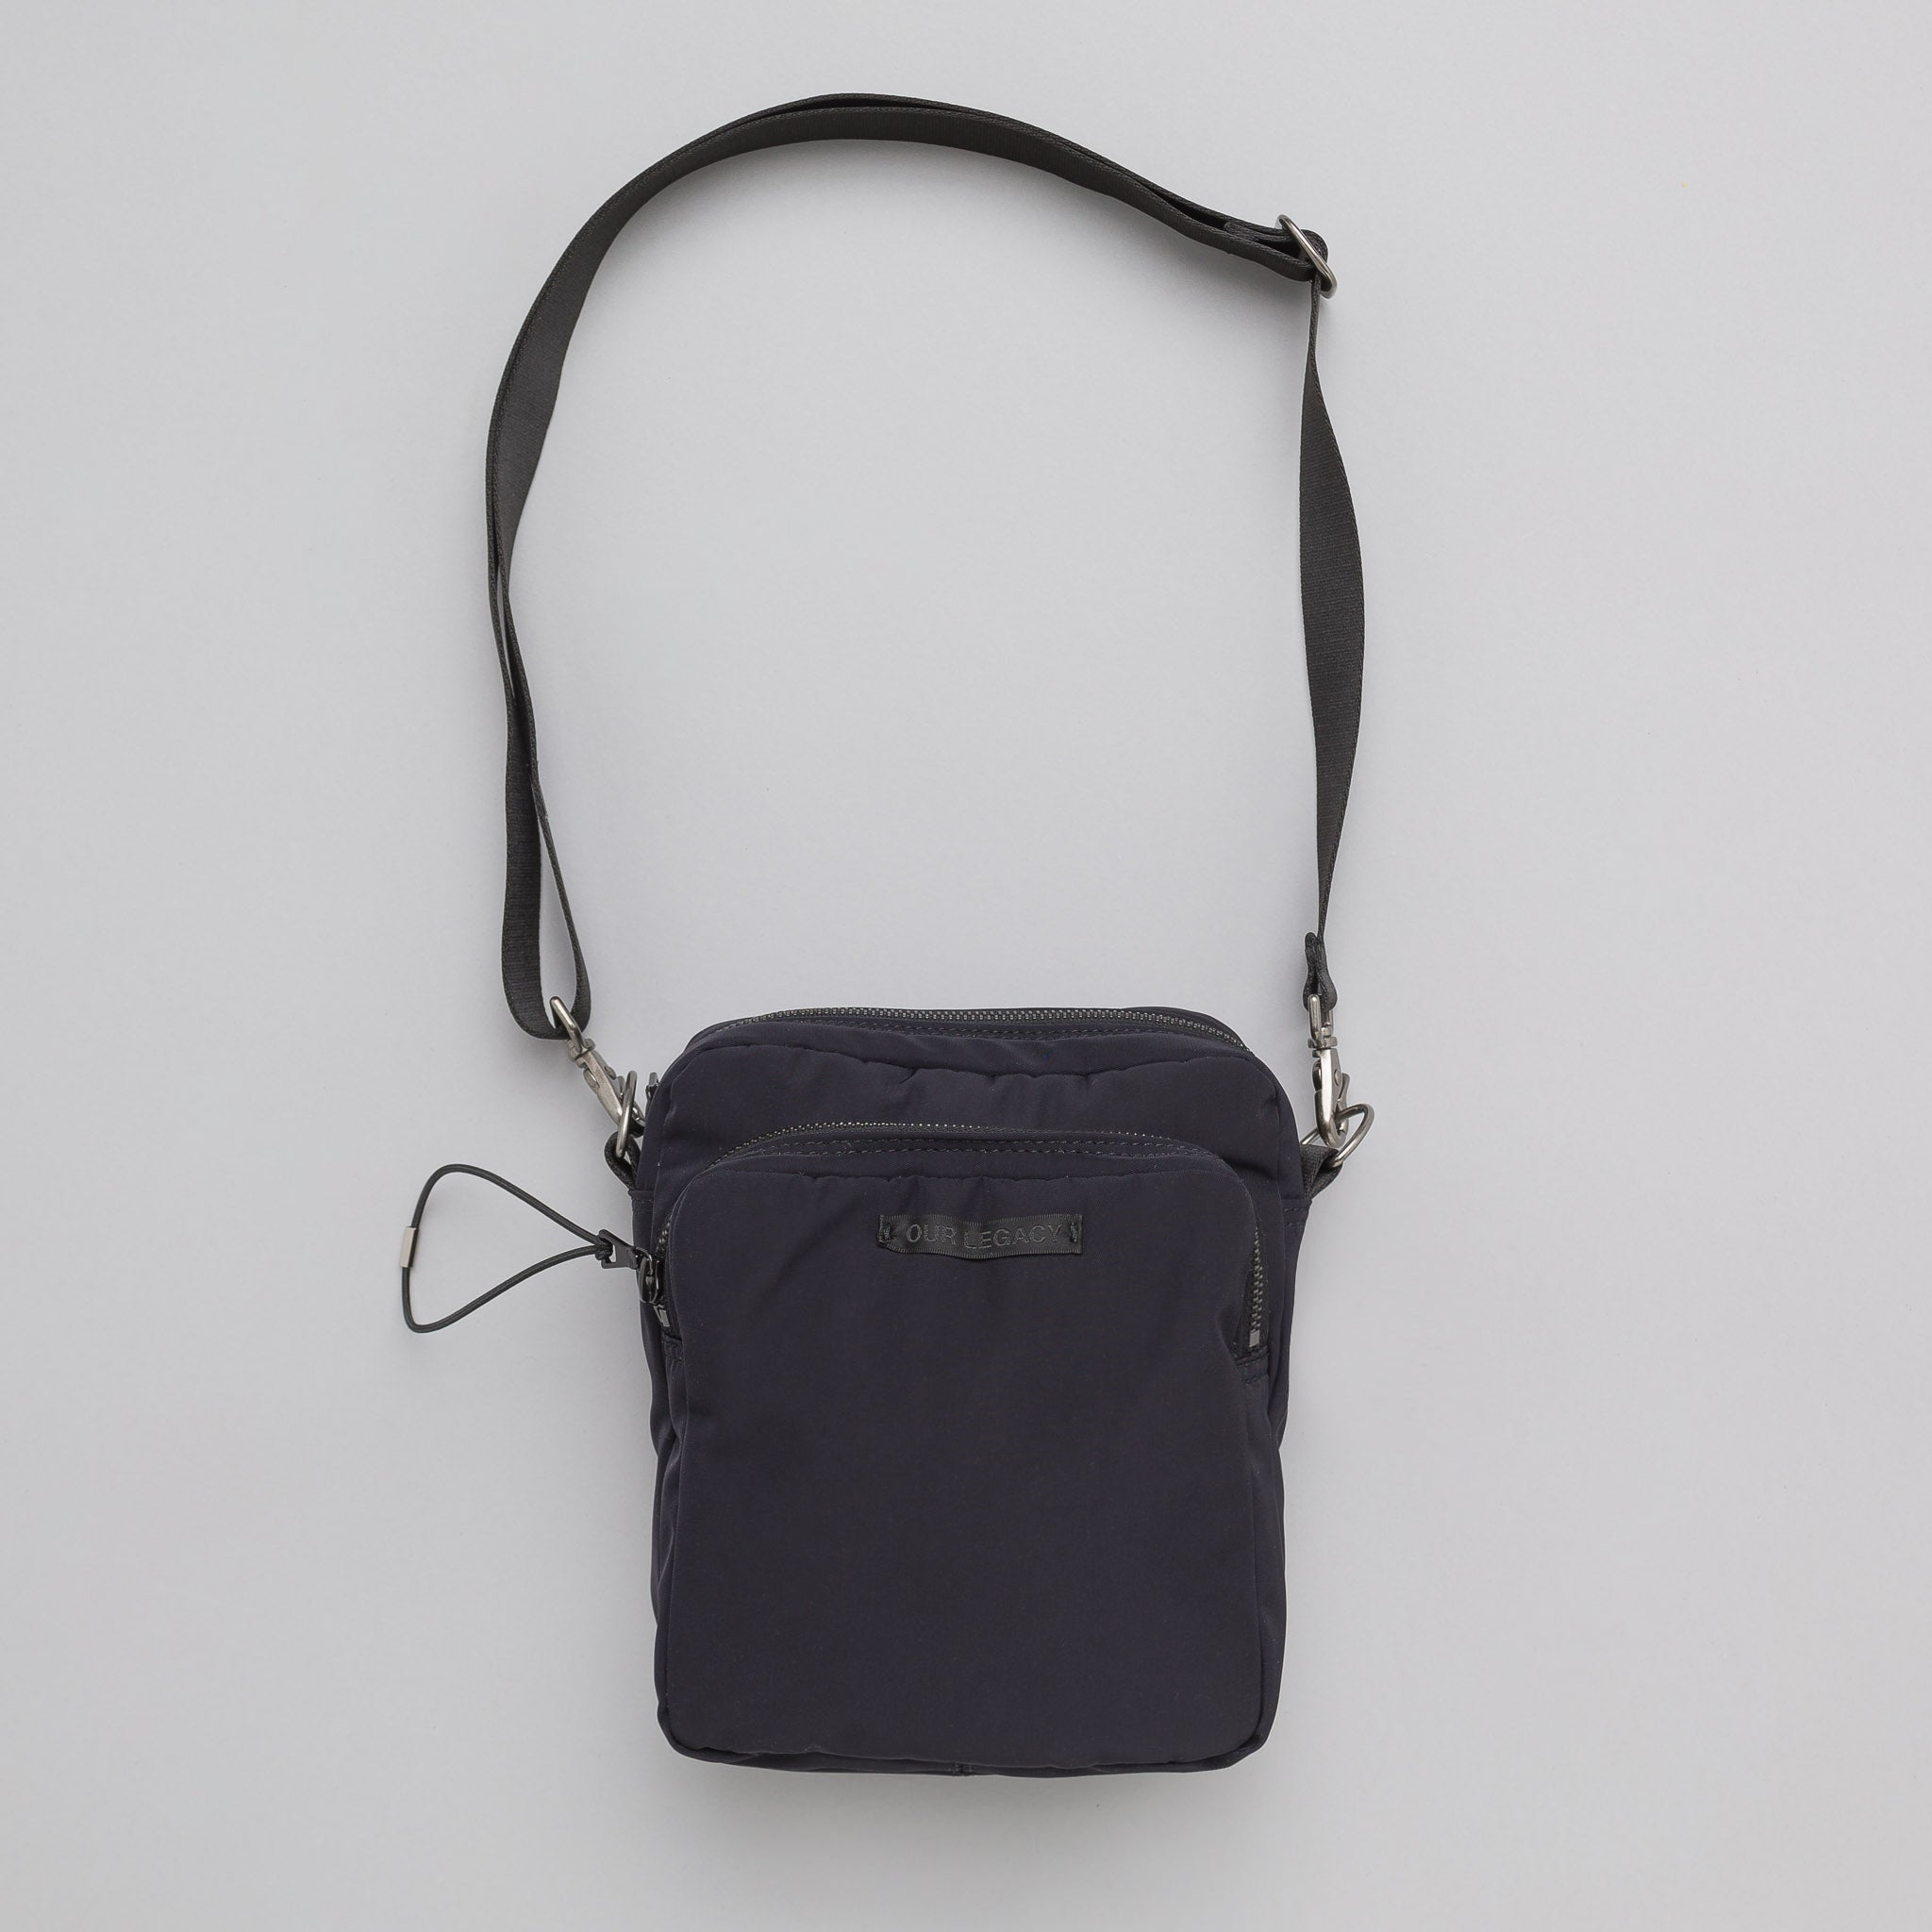 Valve Cross Body Bag in Black